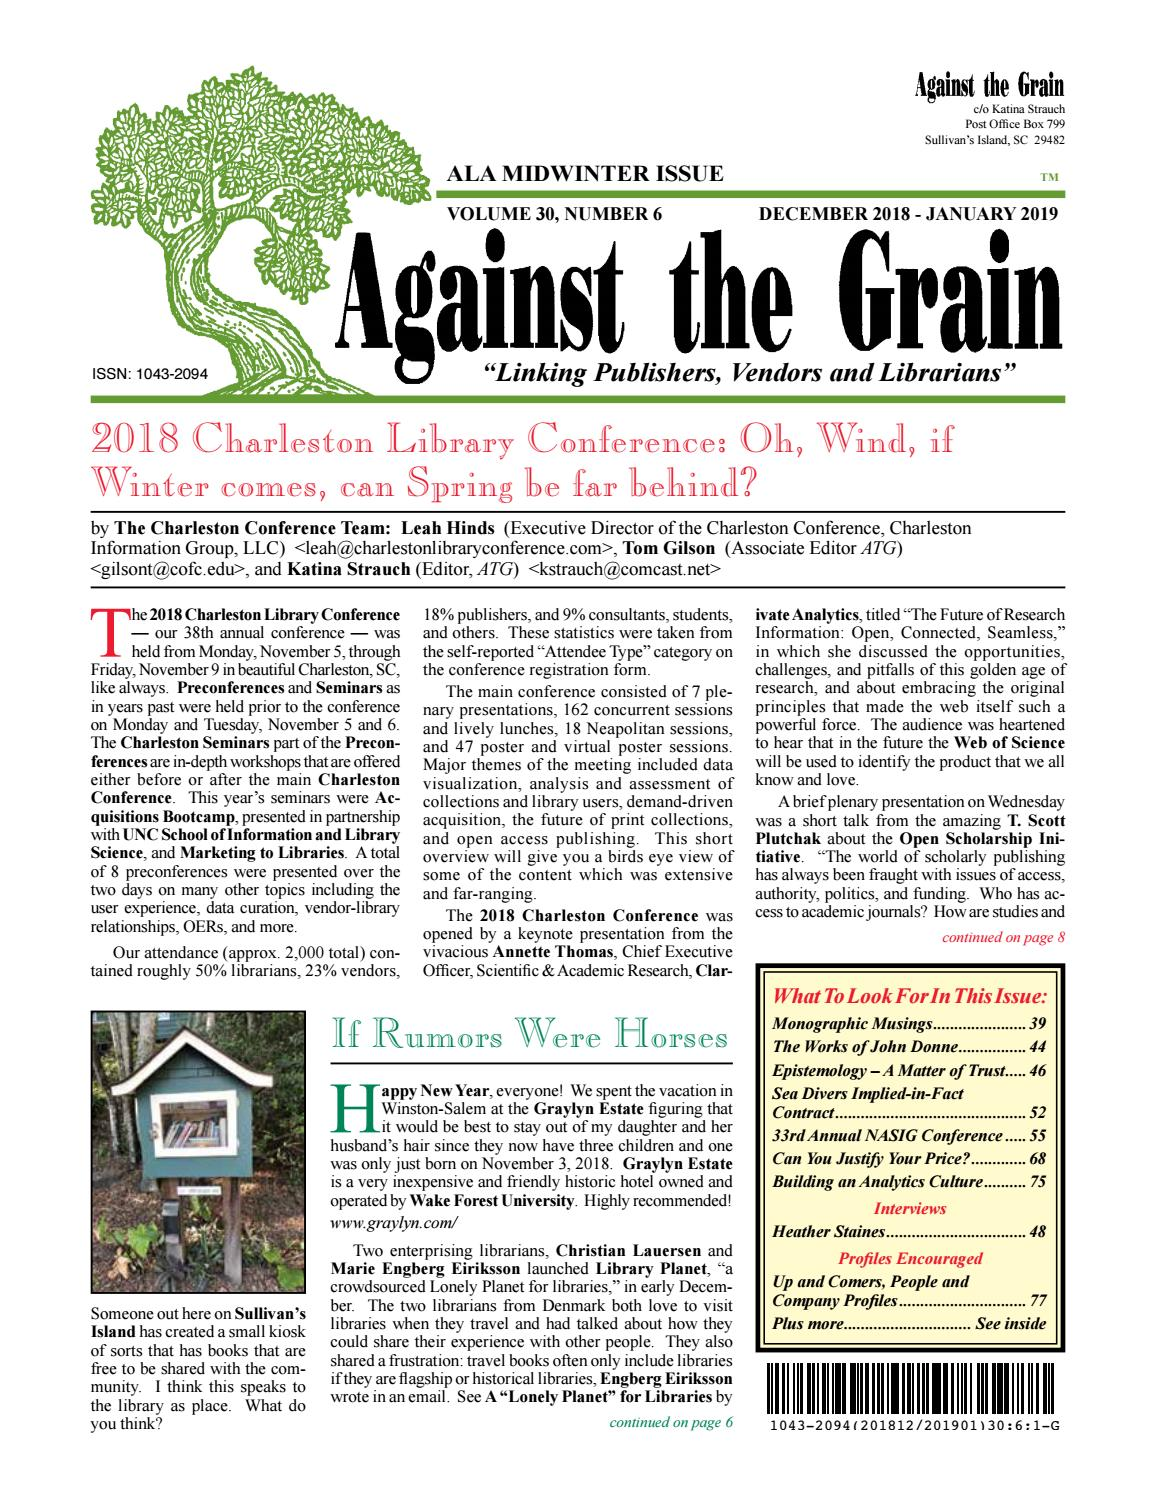 Against the Grain v30 #6 by against-the-grain - issuu